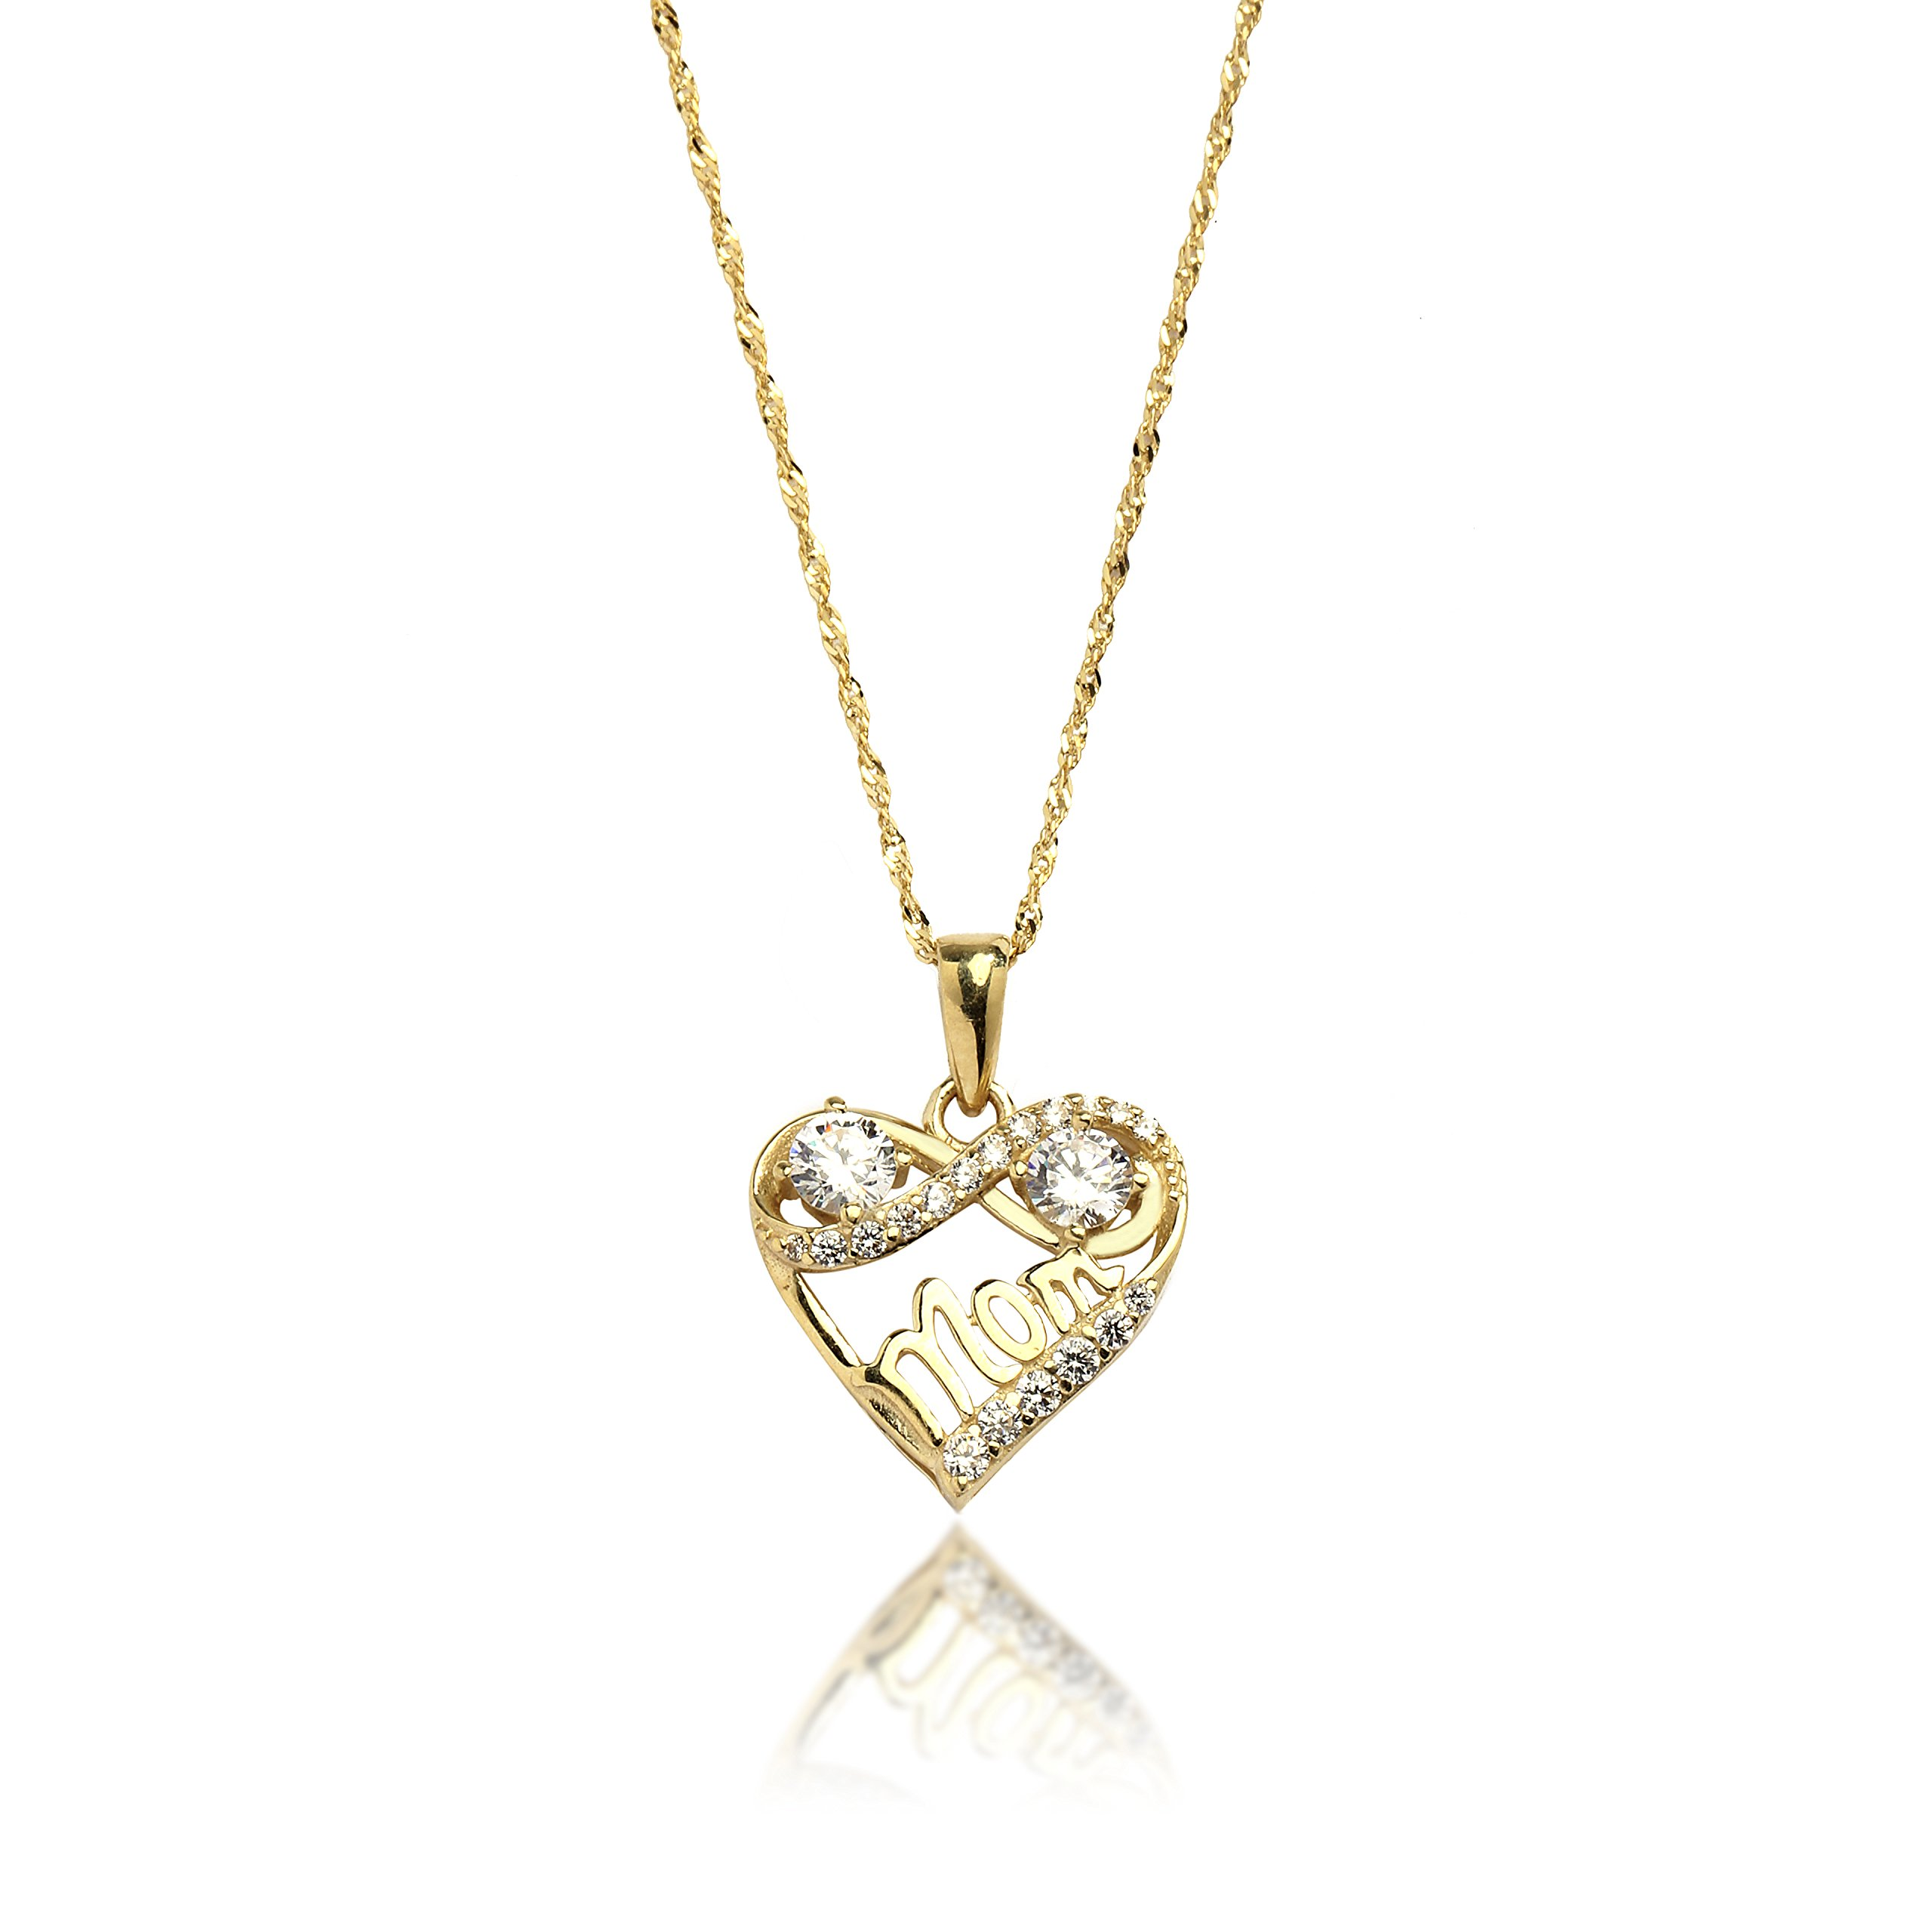 18'' 10K Yellow Gold Heart and Infinity Mom Cubic Zirconia Pendant Necklace for Women